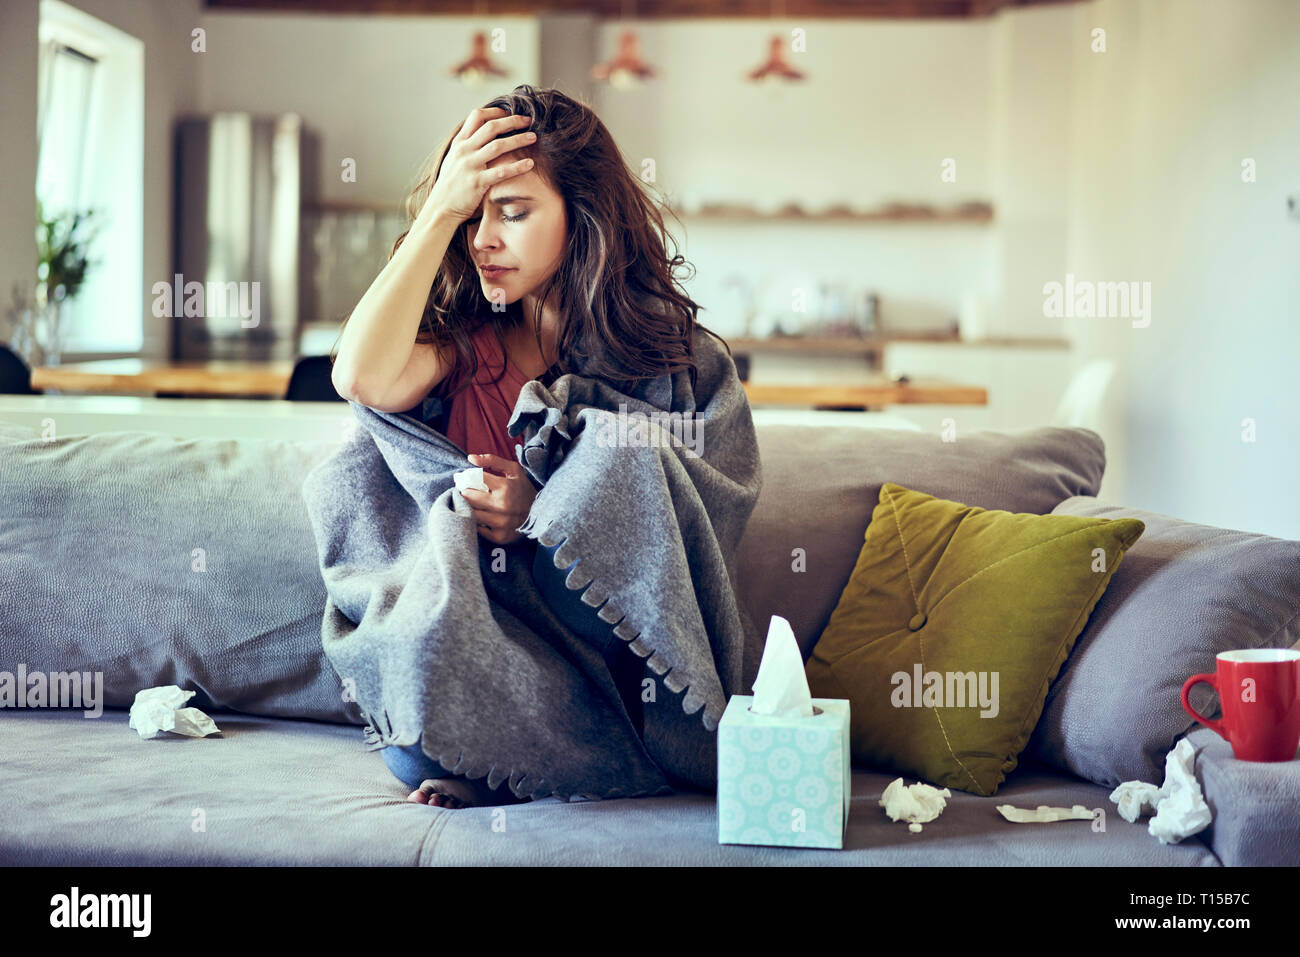 Portrait of sick woman sitting on couch and holding her aching head - Stock Image